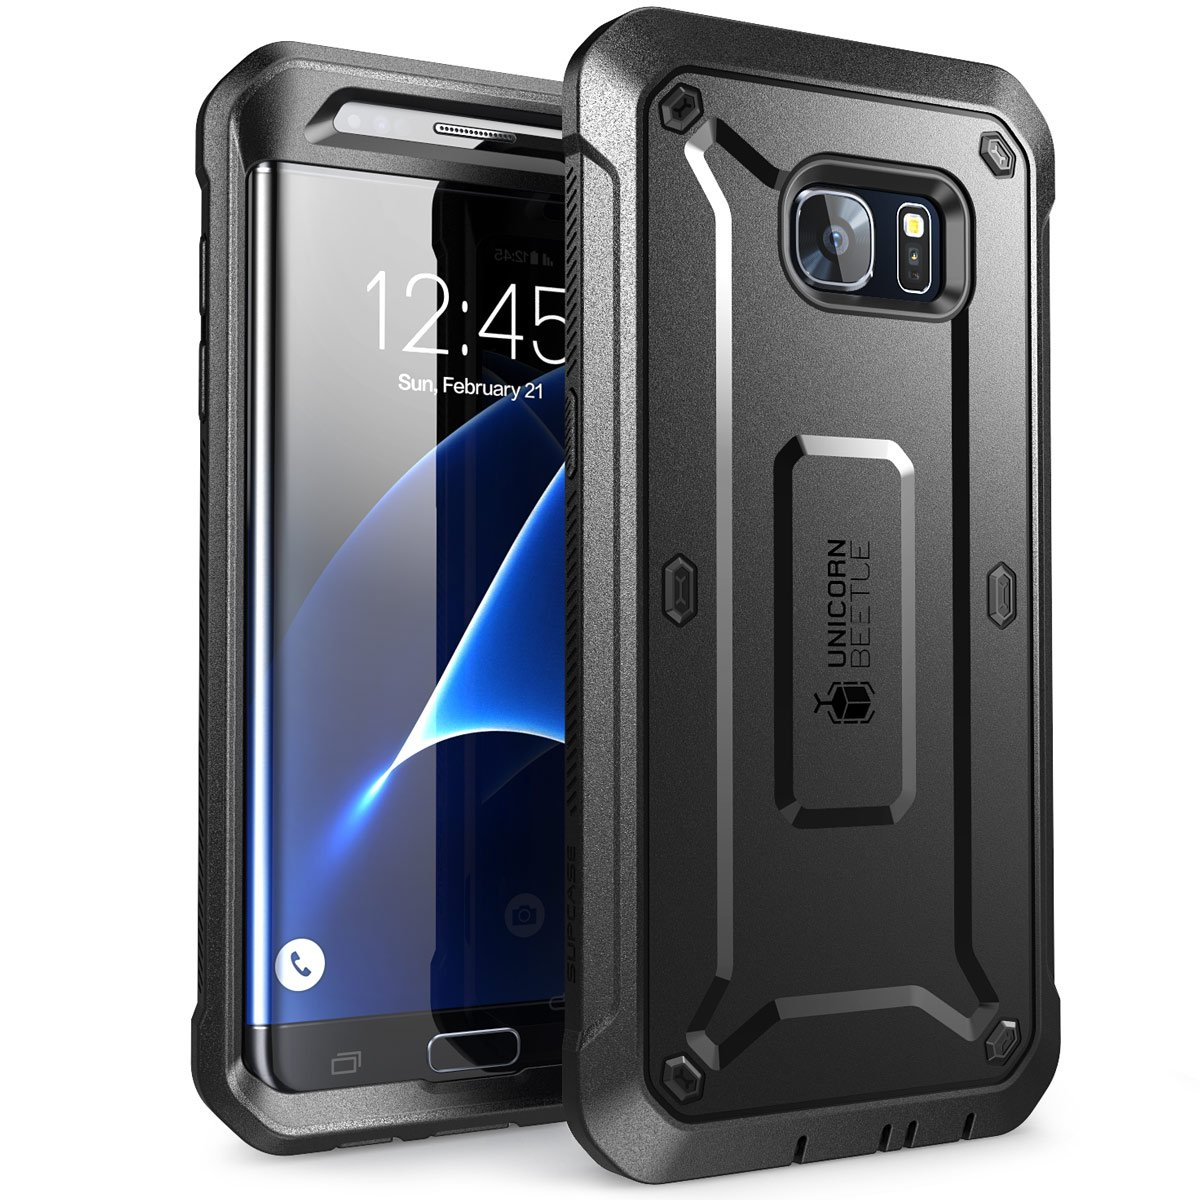 best samsung galaxy s7 case amazon comgalaxy s7 edge case, supcase full body rugged holster case without built in